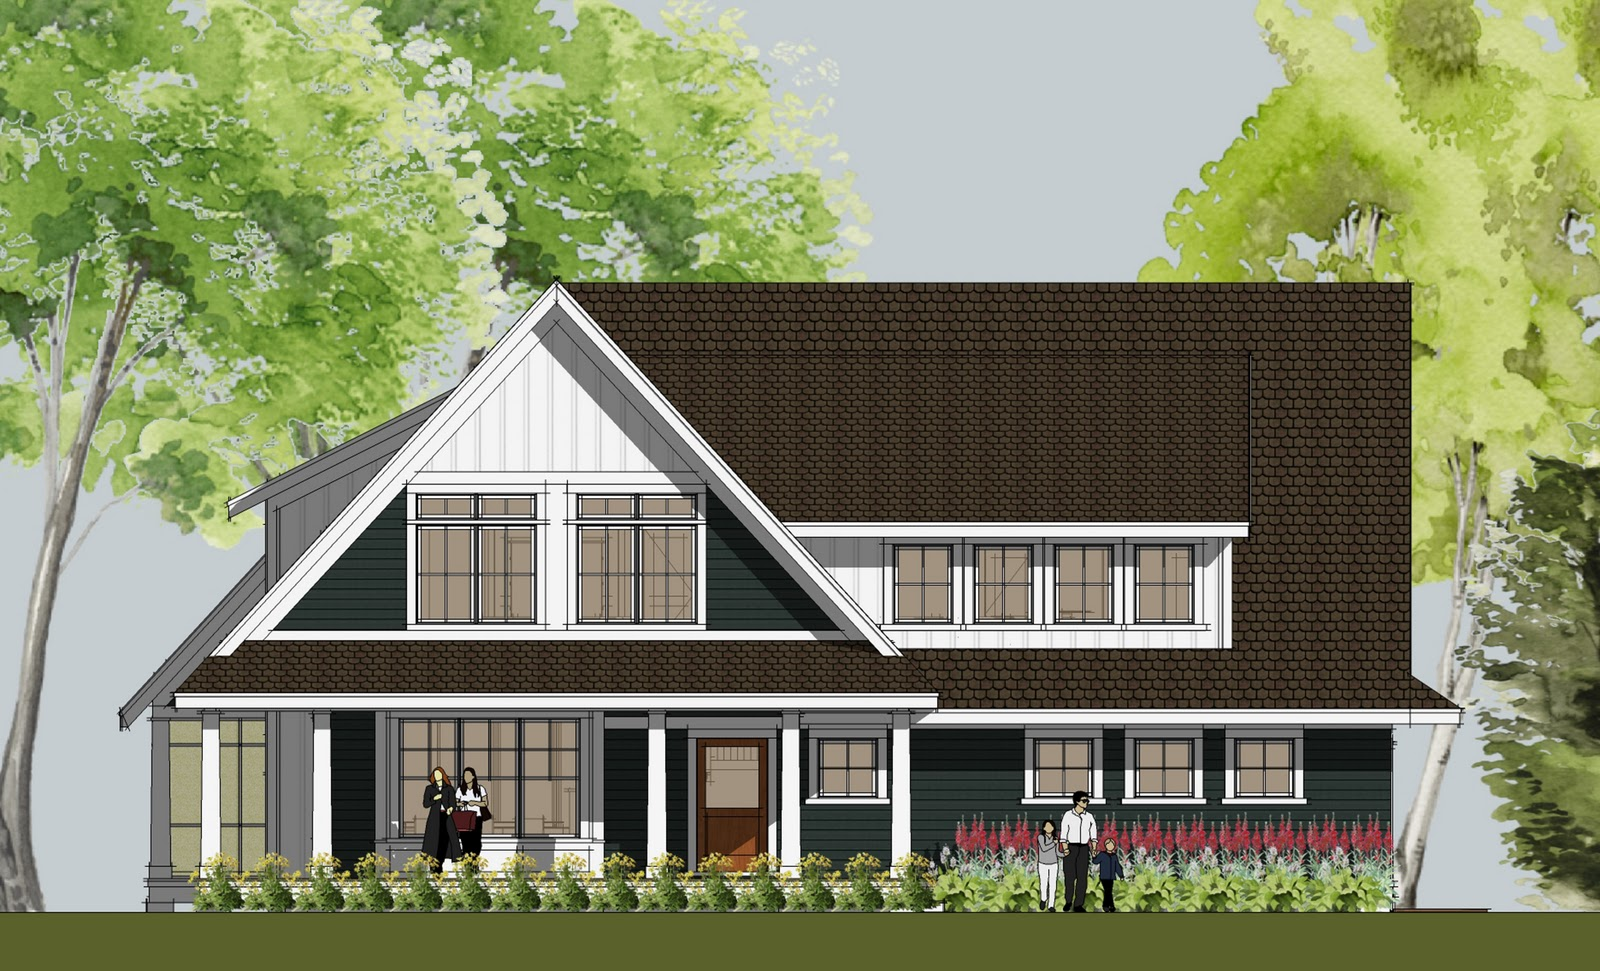 Simple elegant house plans ideas photo gallery house for Simple house plans